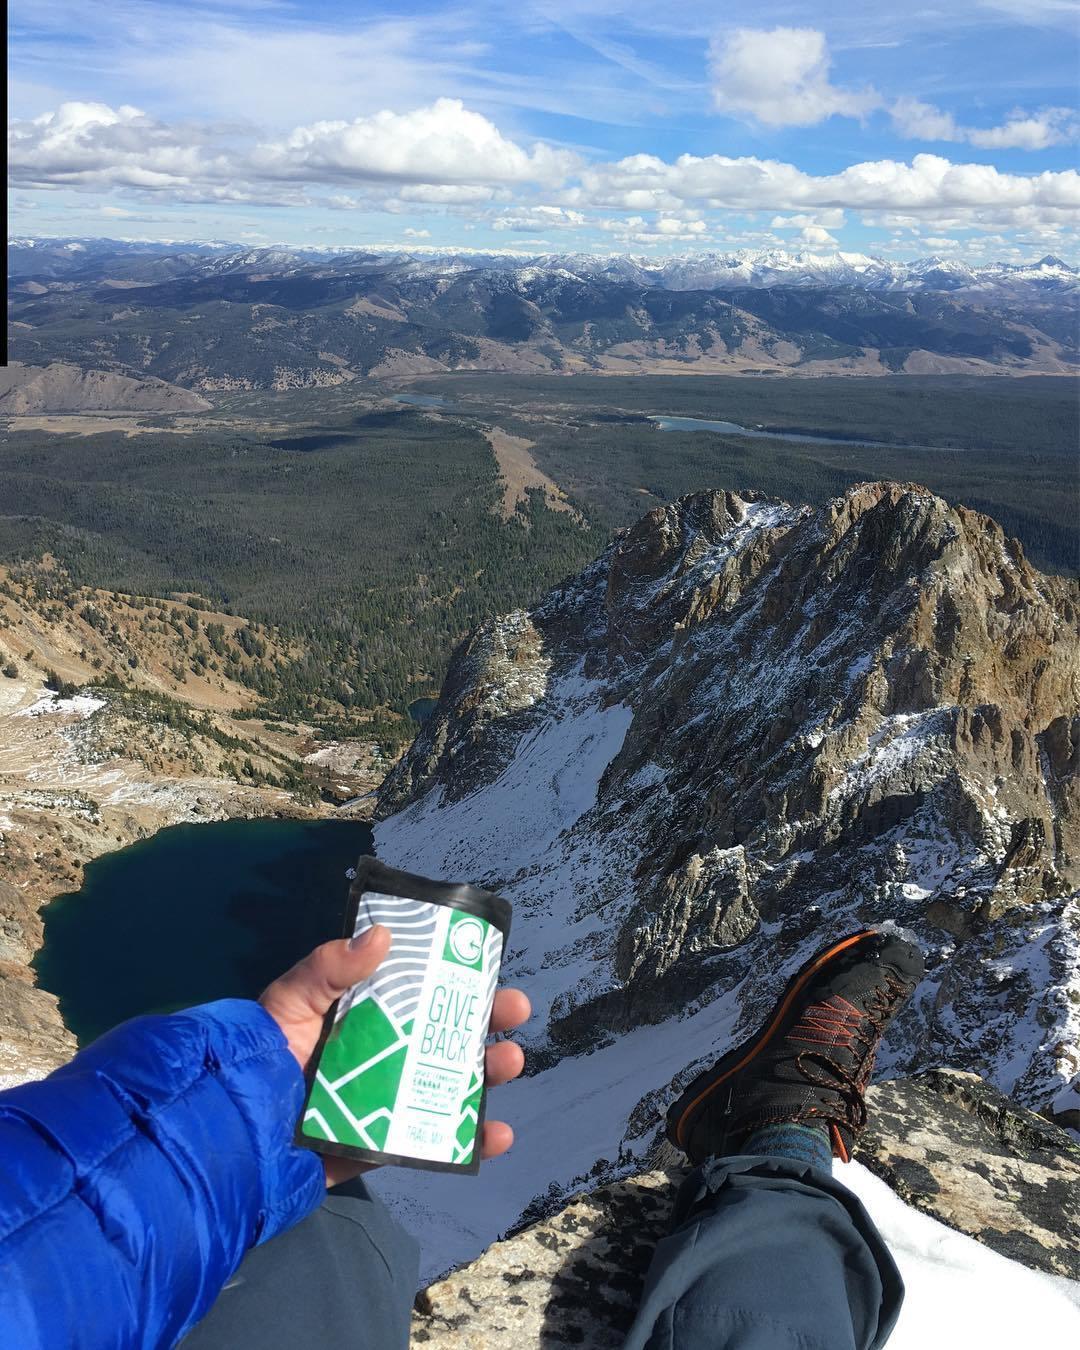 @youngmead fueling up on the top of Thompson Peak, the highest peak in the Sawtooth Mountains!